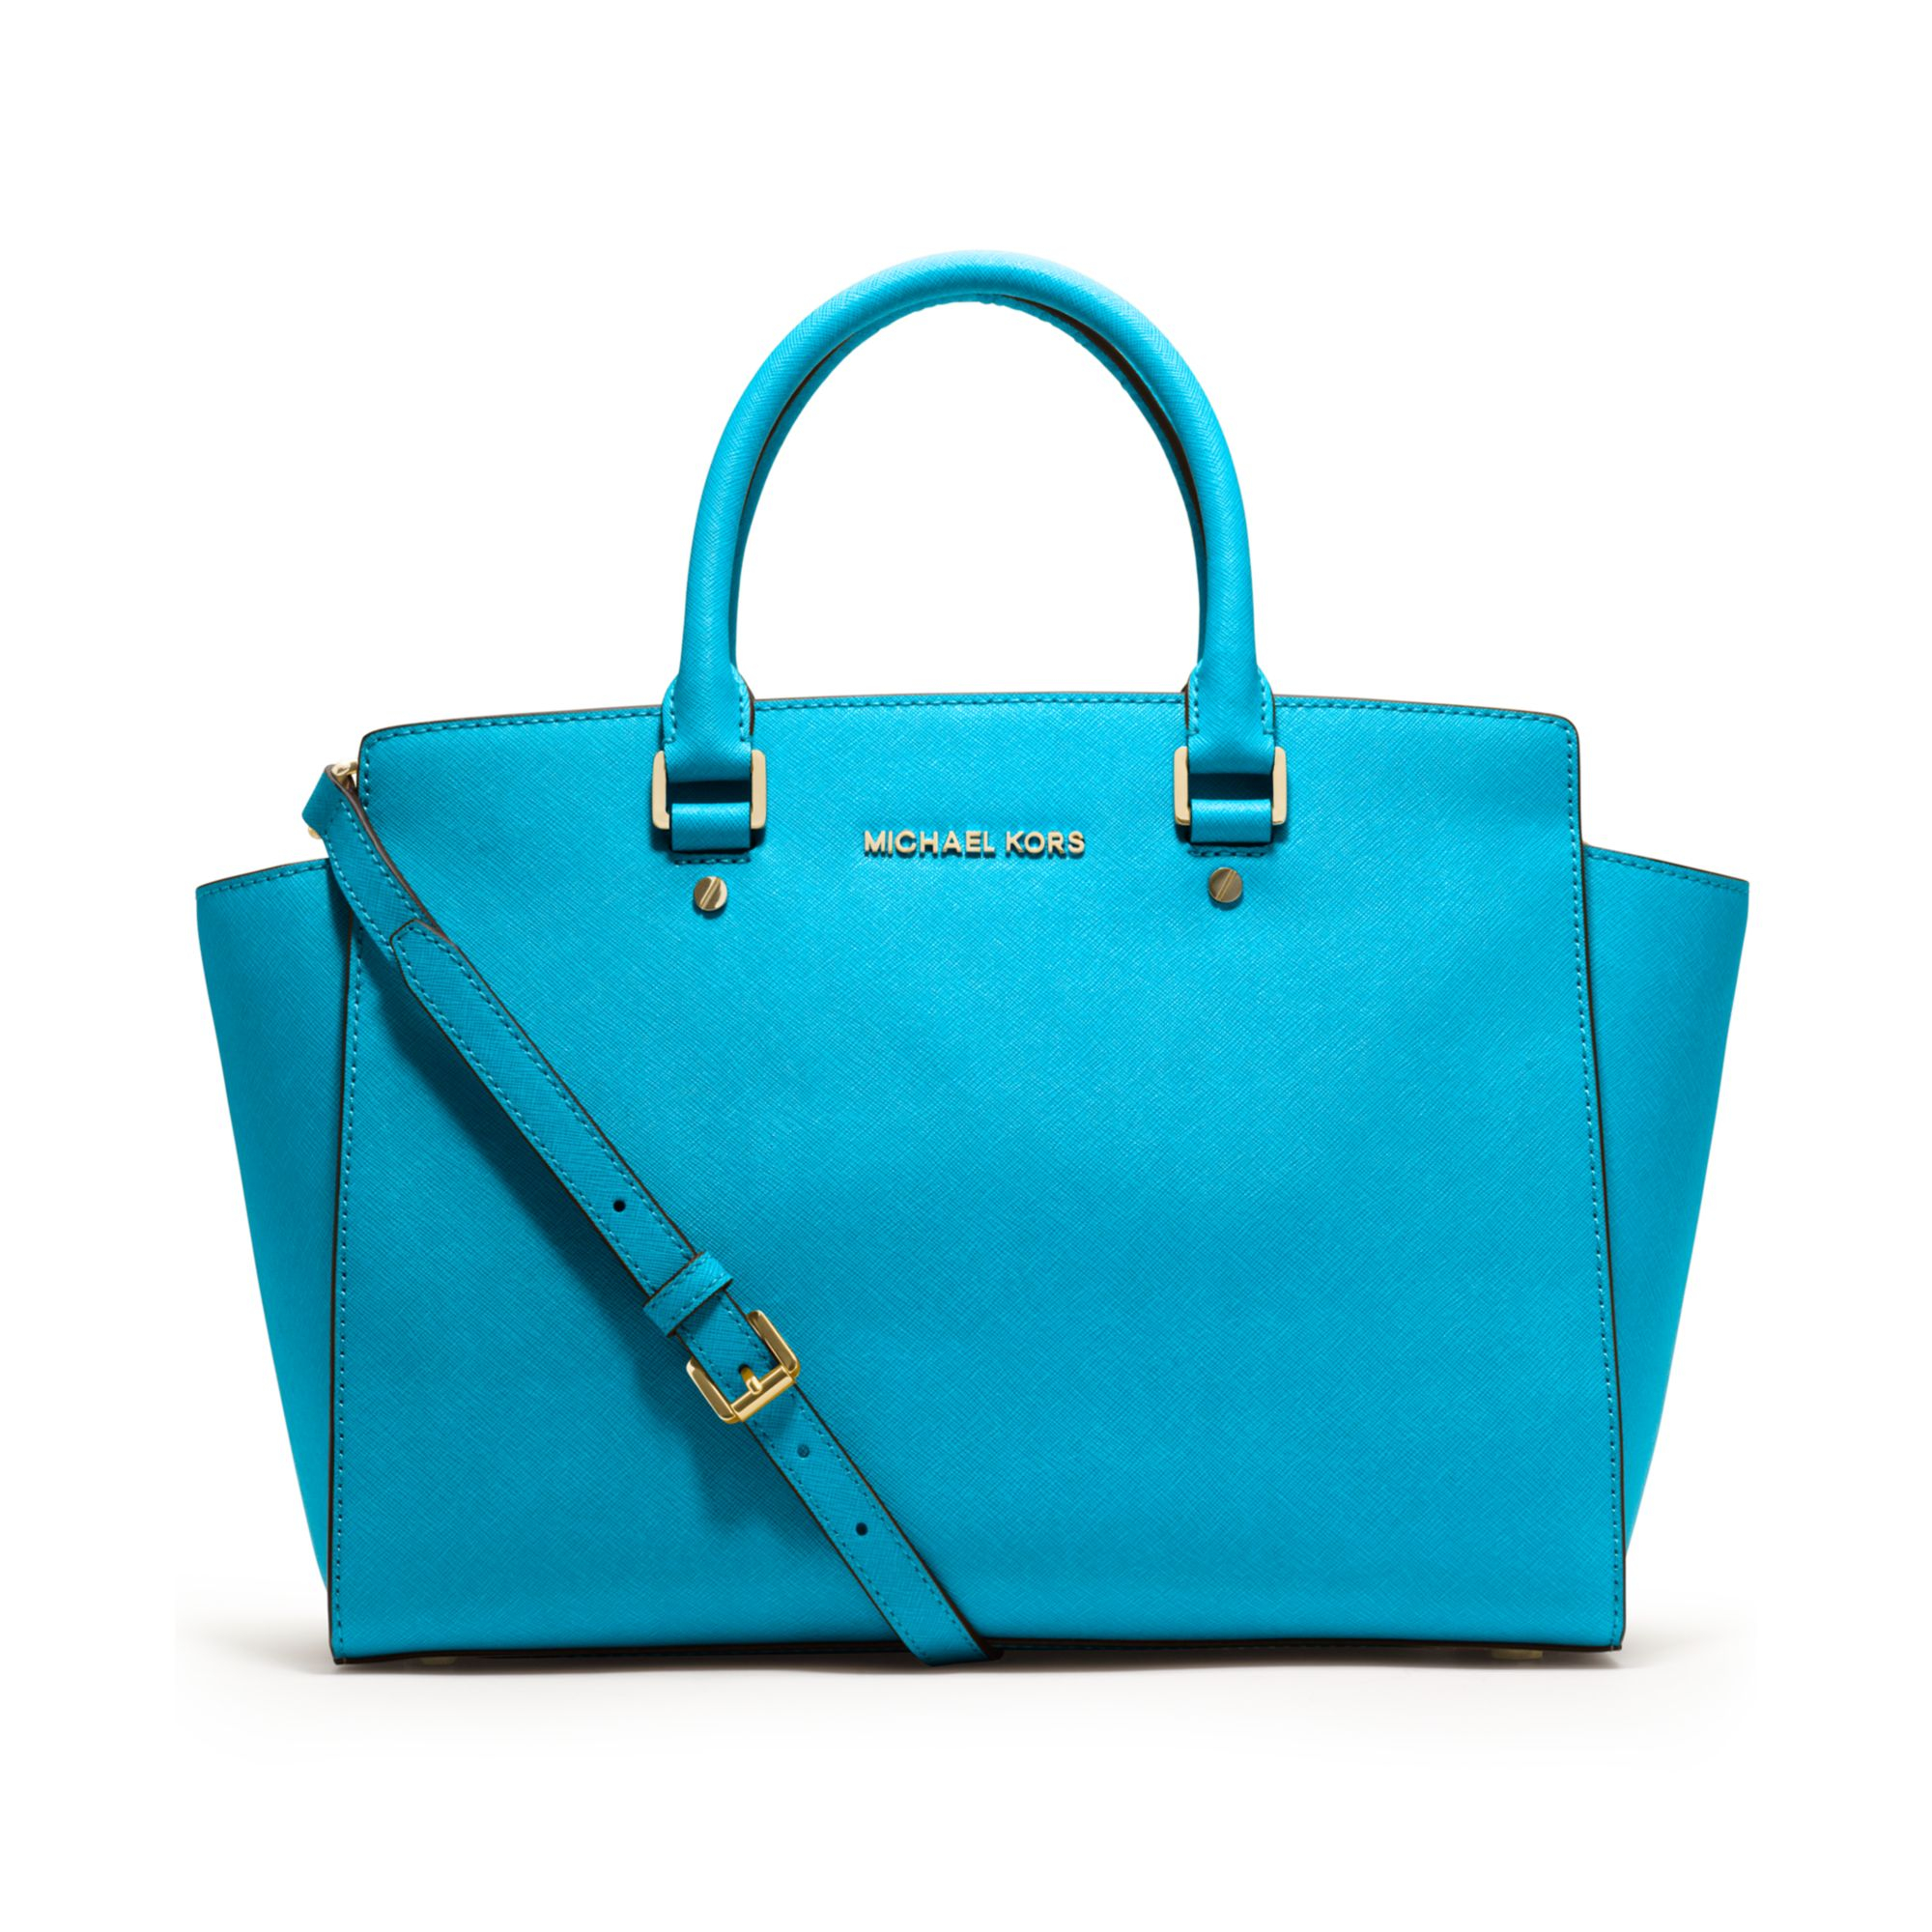 Gallery Previously Sold At Macy S Women Michael By Kors Selma